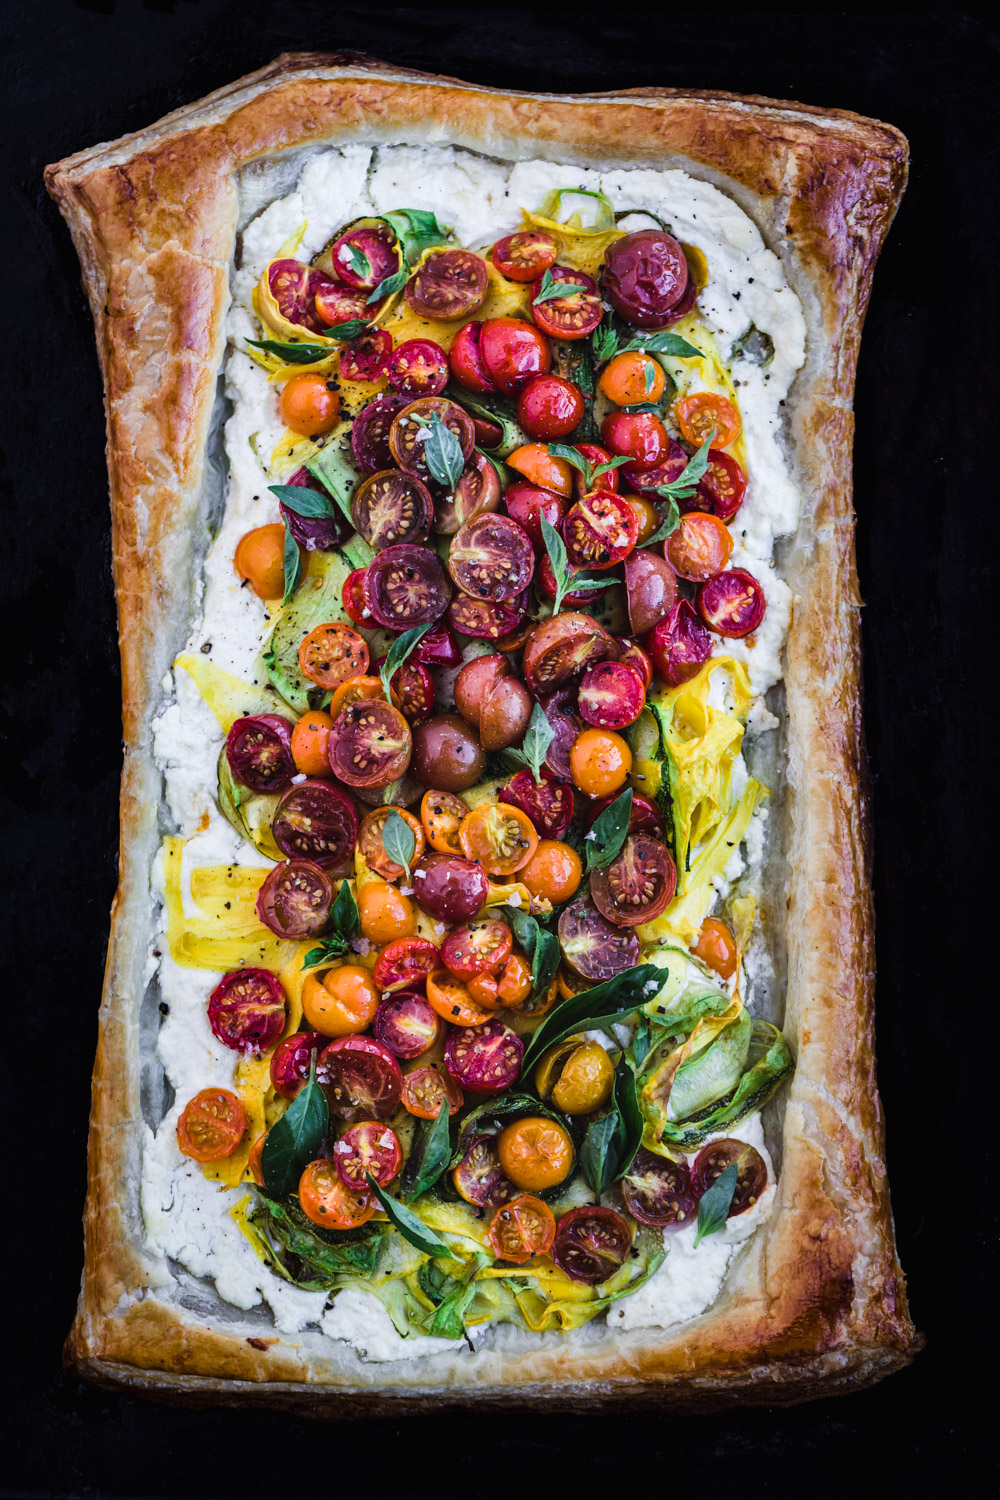 Rainbow tomato puff pastry tart with summer squash ribbons and basil, freshly out of the oven.